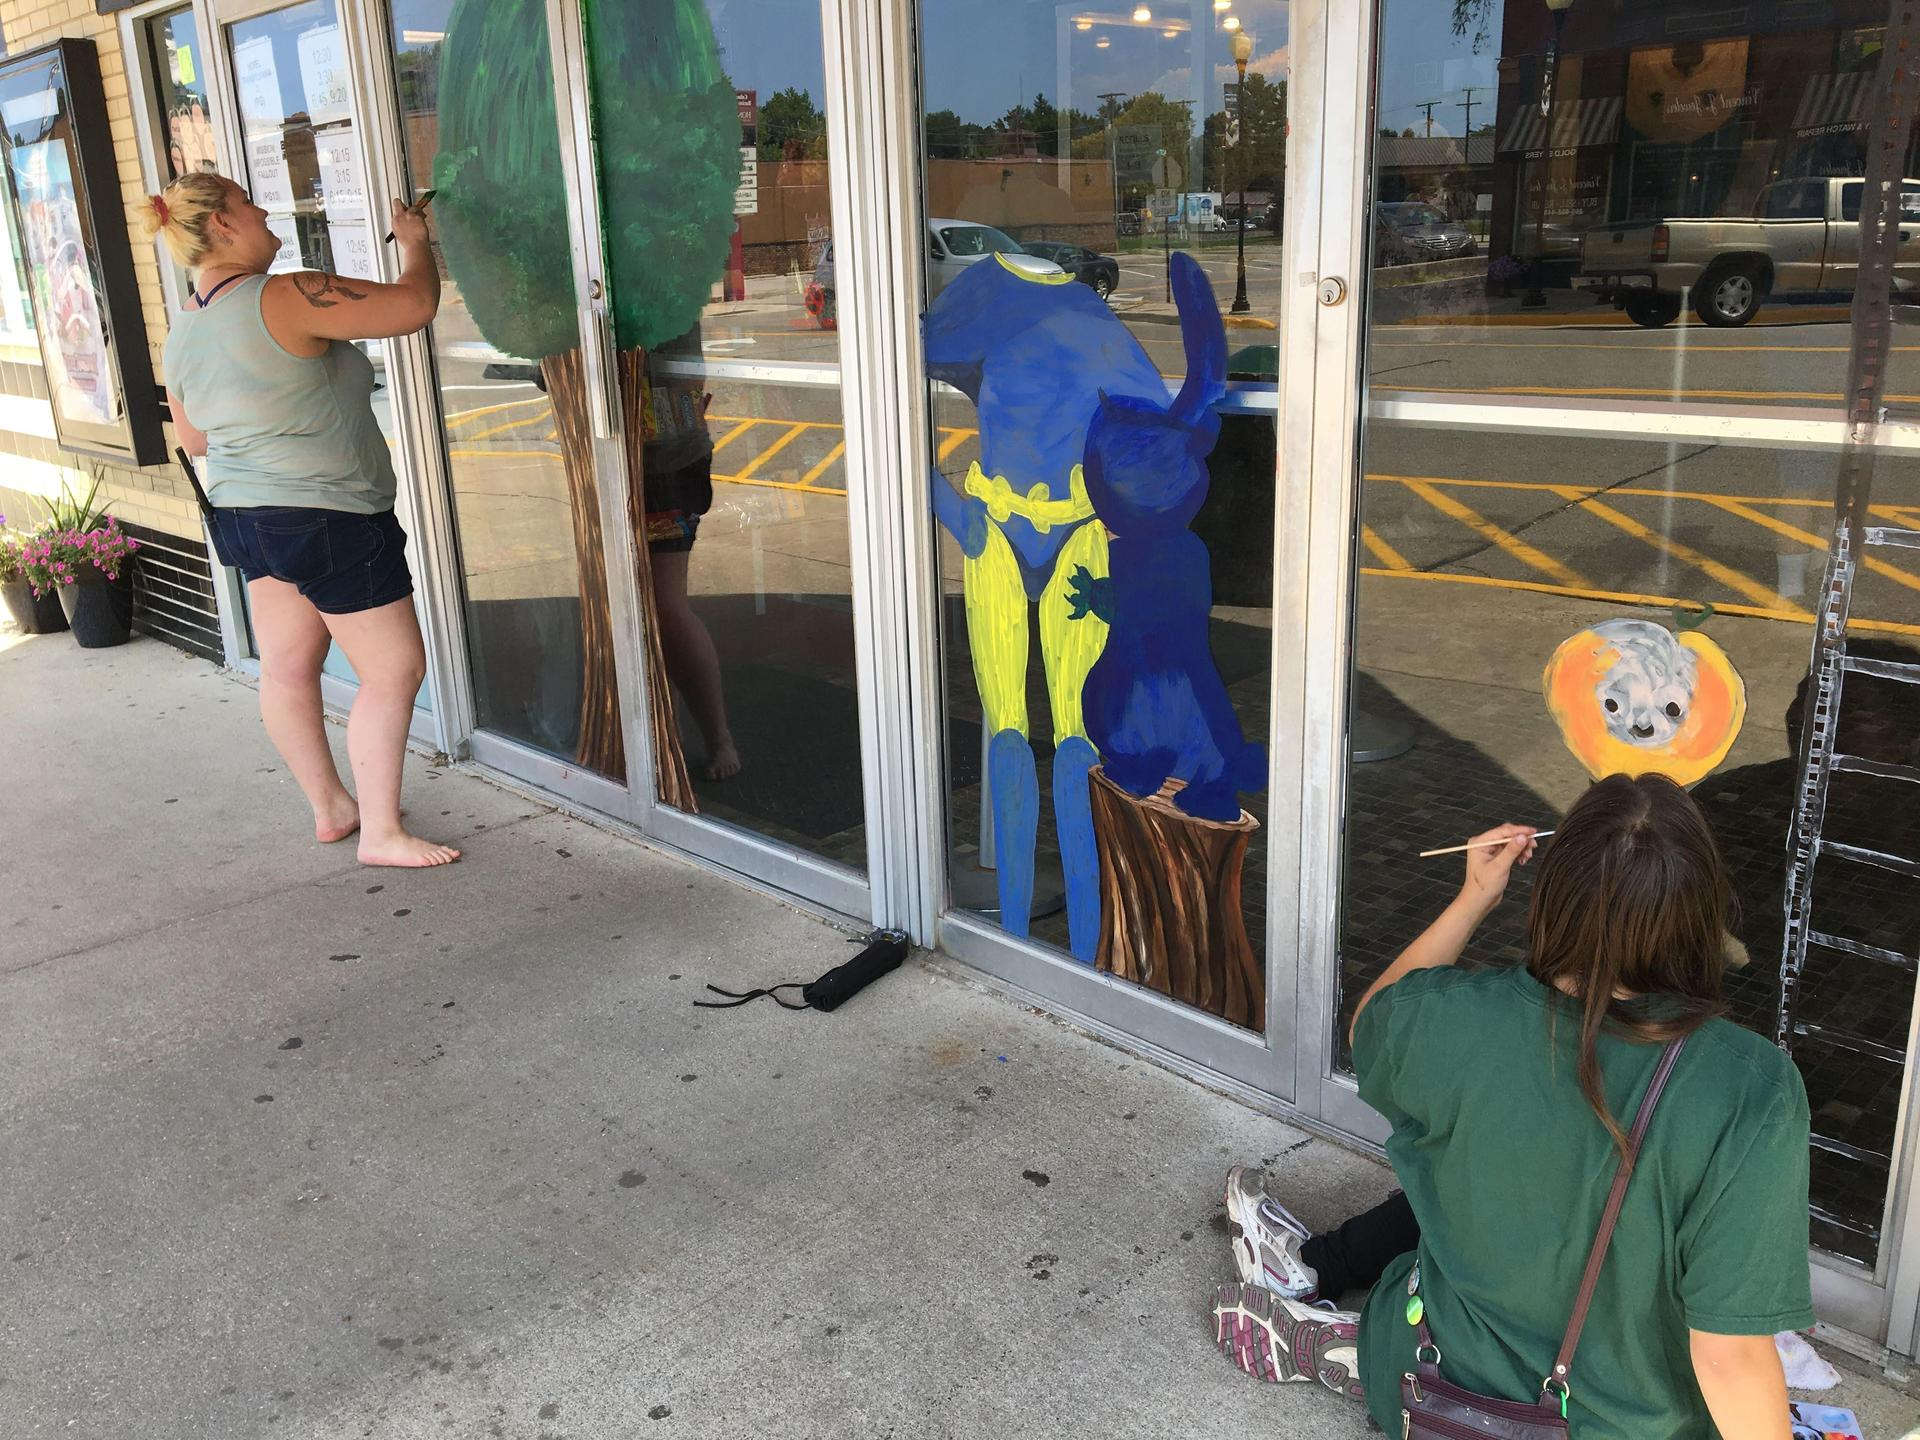 Art students volunteered their summer time to paint business windows in Coloma for the Coloma Peach Festival.